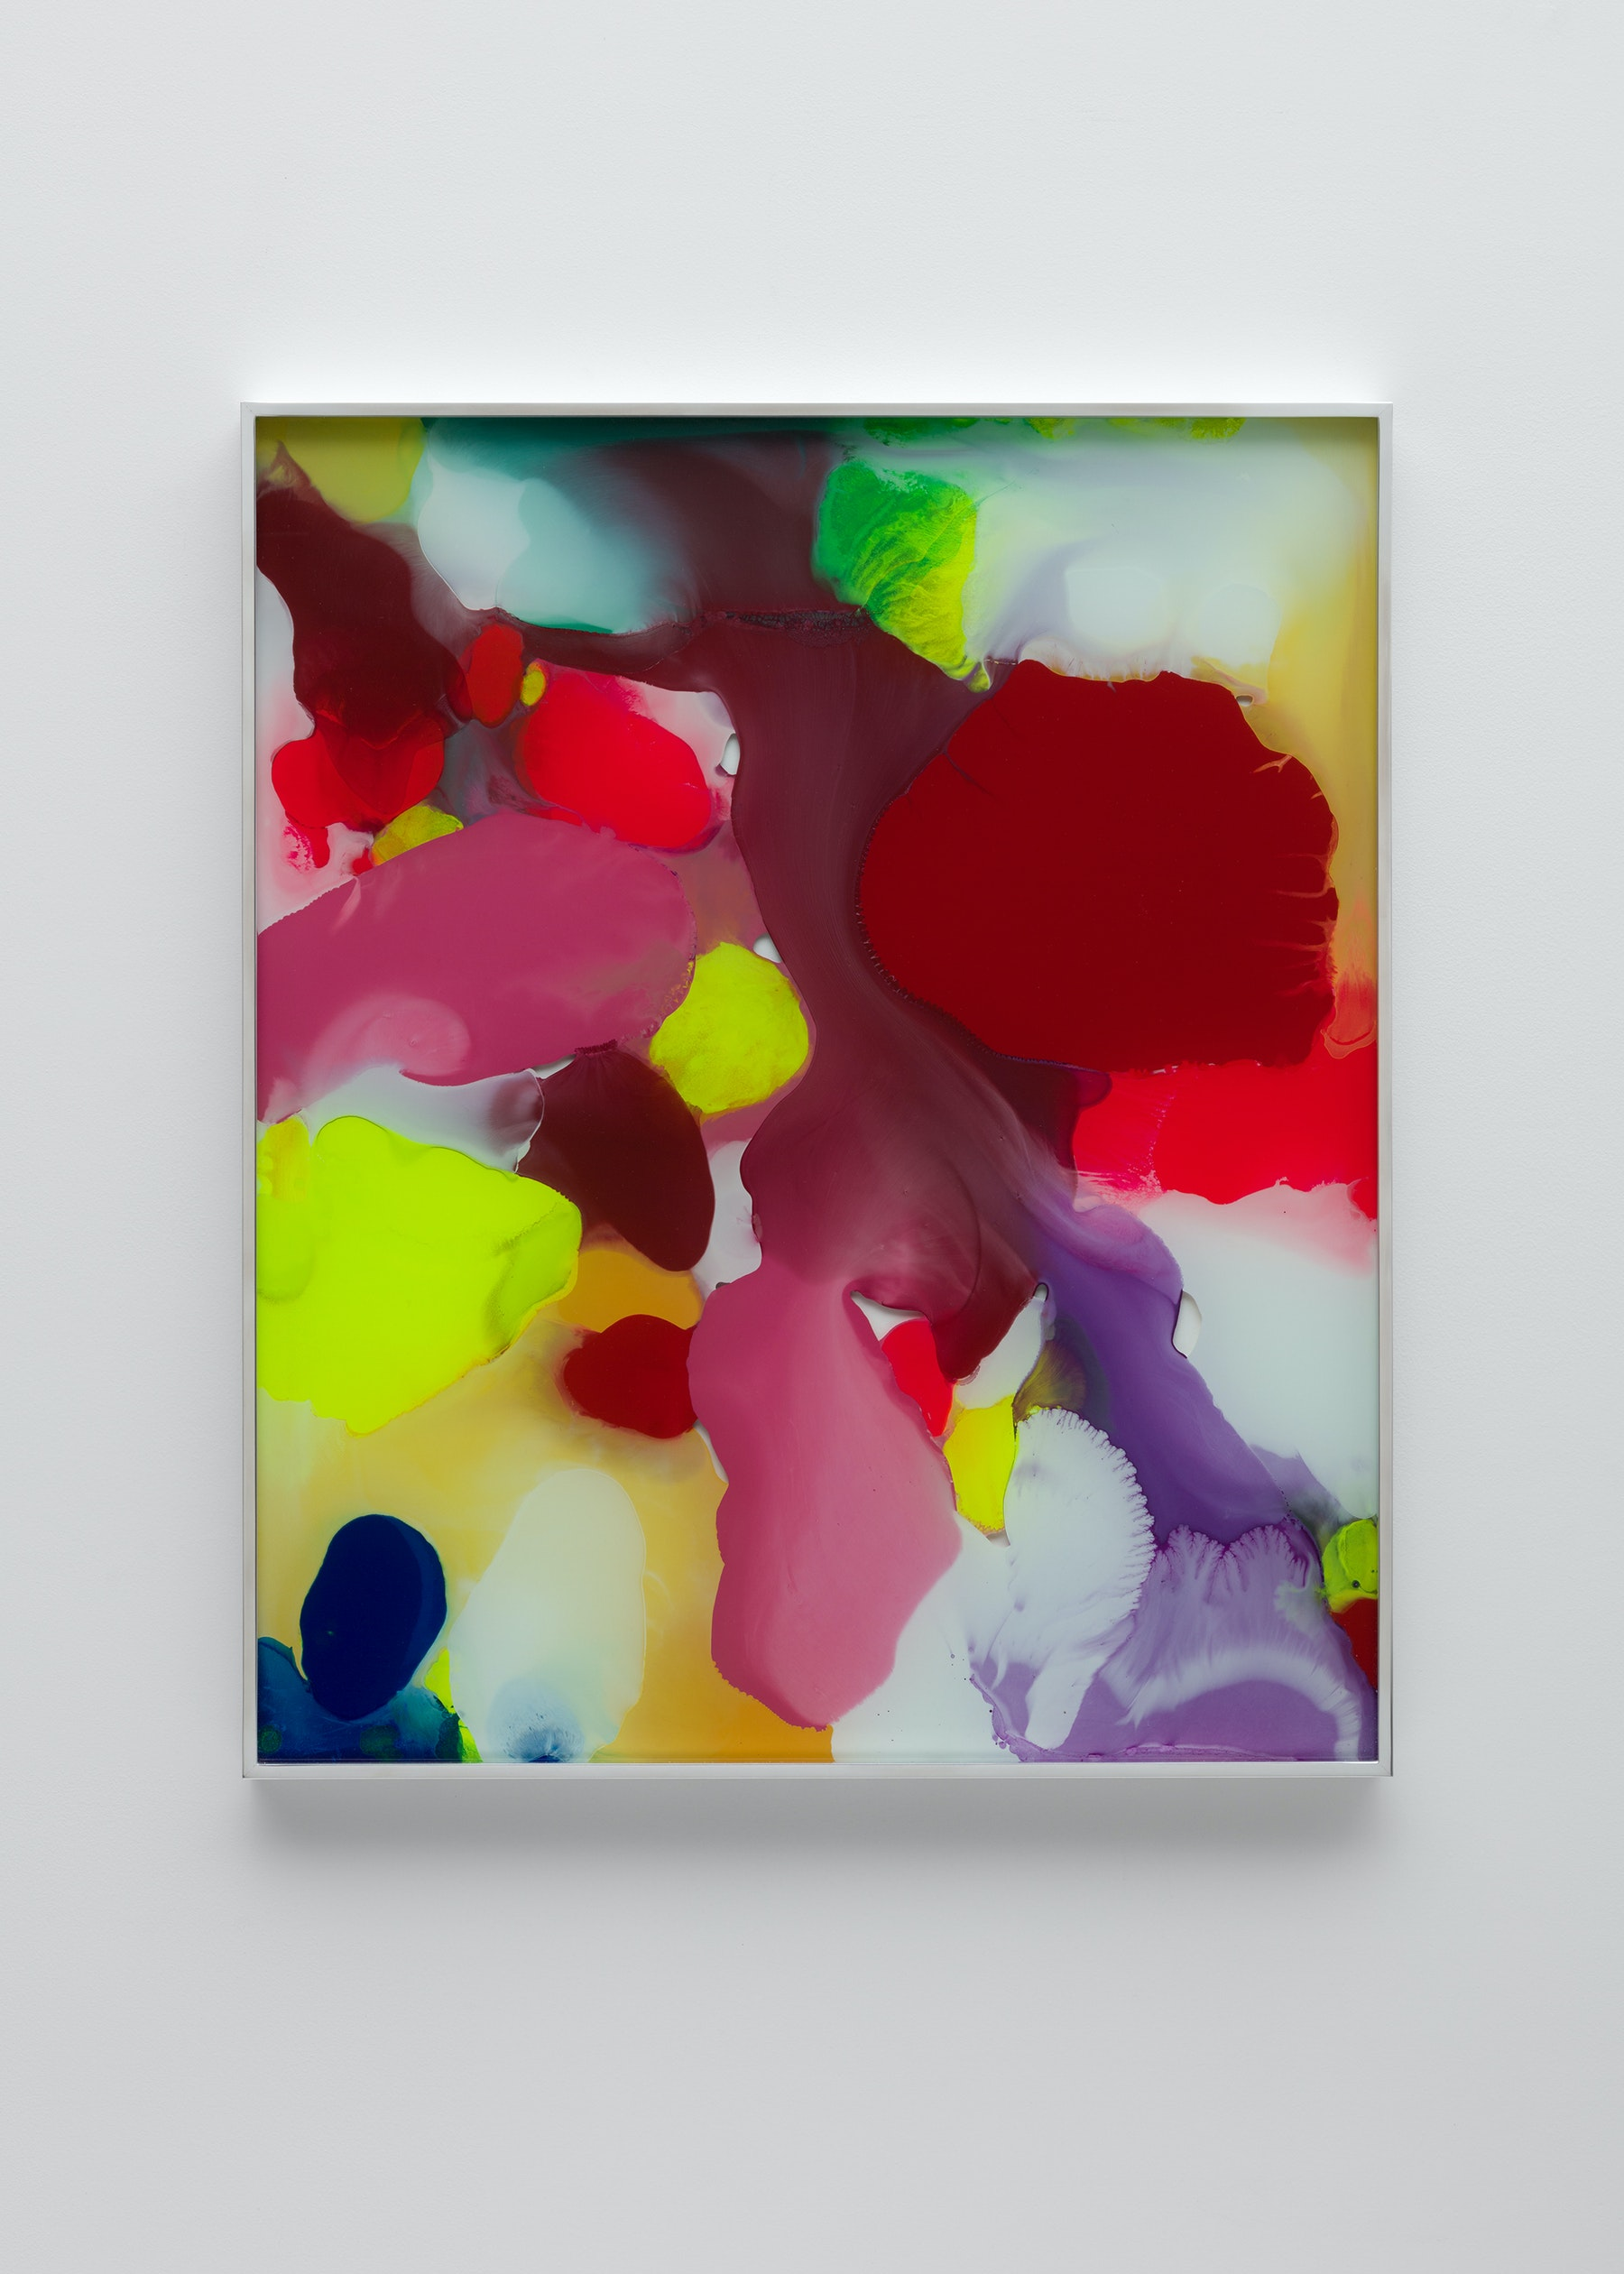 "Yunhee Min ""Up Close in Distance (variation study b2),"" 2018 Enamel on laminated glass 30.5 x 25.5"" [HxW] (77.47 x 64.77 cm) Inventory #MIN340 Courtesy of the artist and Vielmetter Los Angeles Photo credit: Brica Wilcox"